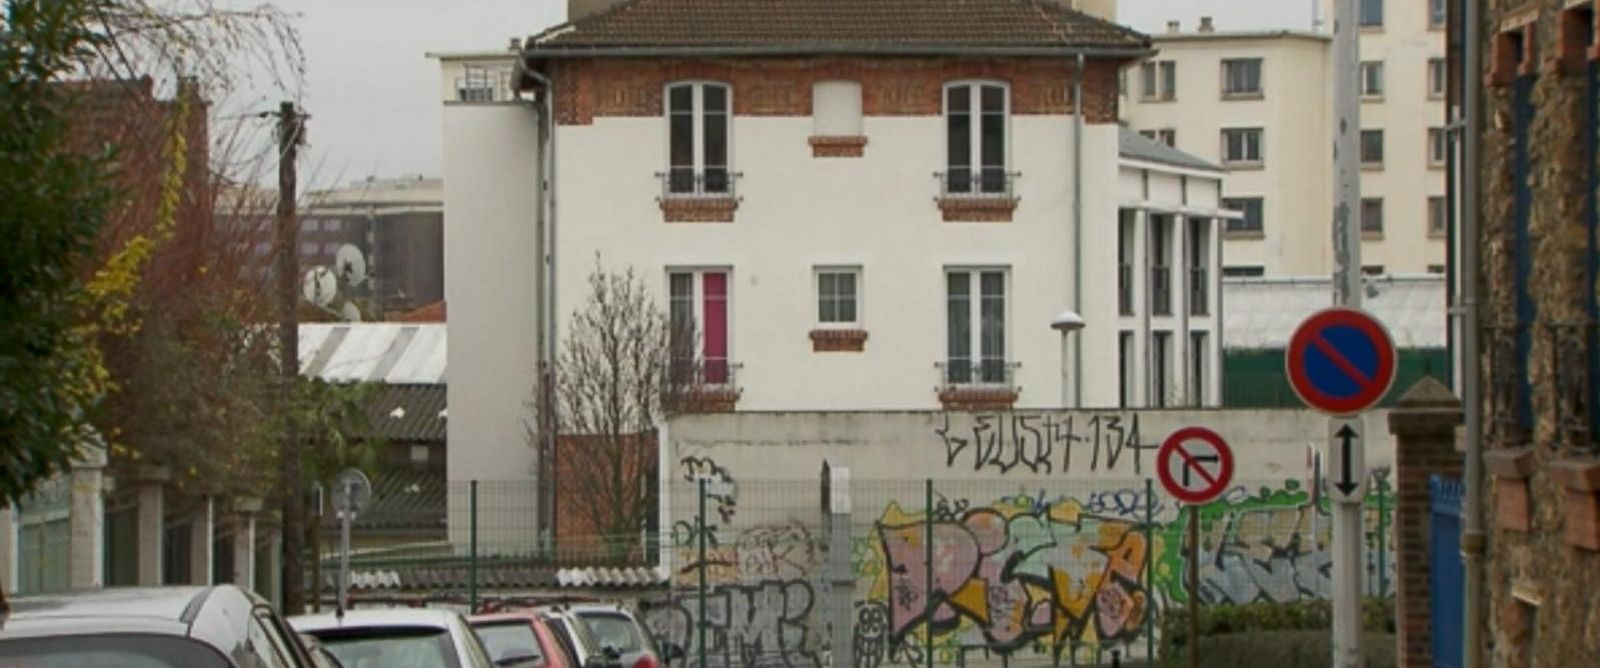 PHOTO: Authorities believe Amedy Coulibaly used this hideout in Gentilly, France, to prepare for attacks in Paris.